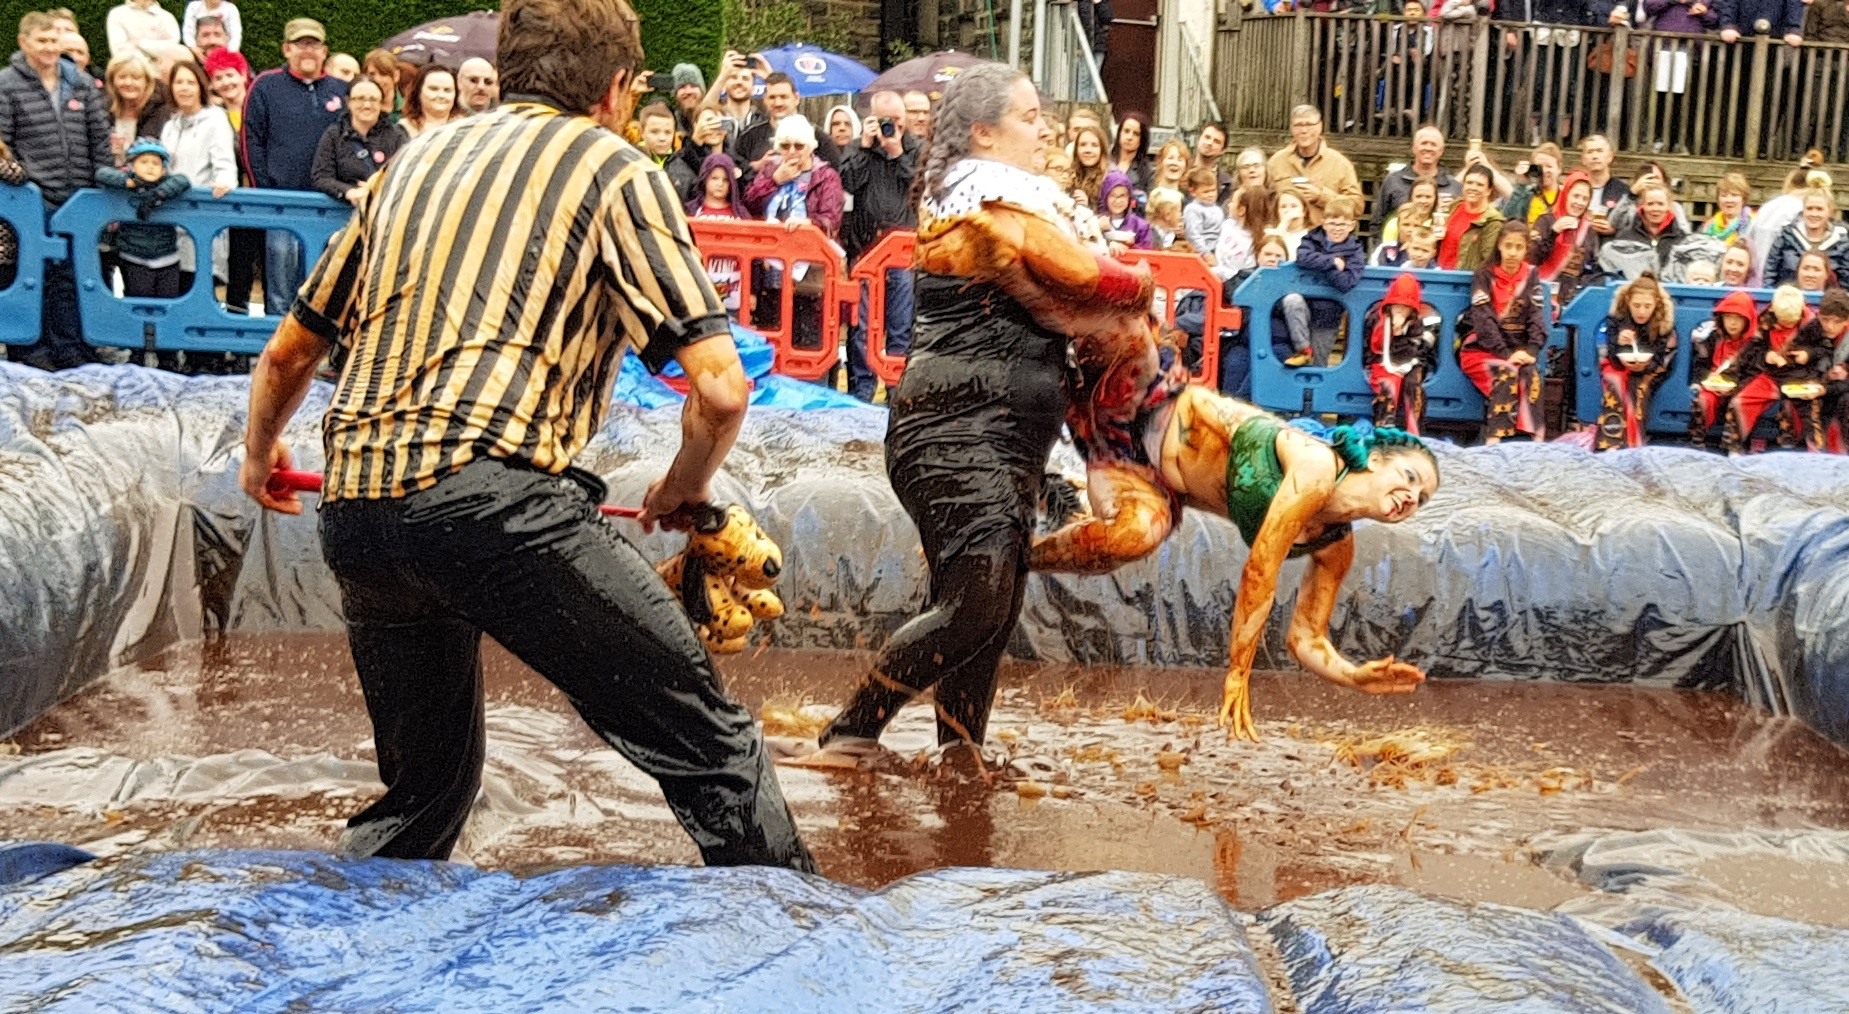 Gravy Wrestling 2018 - Cruella de gravy and Britains next top muffin 4